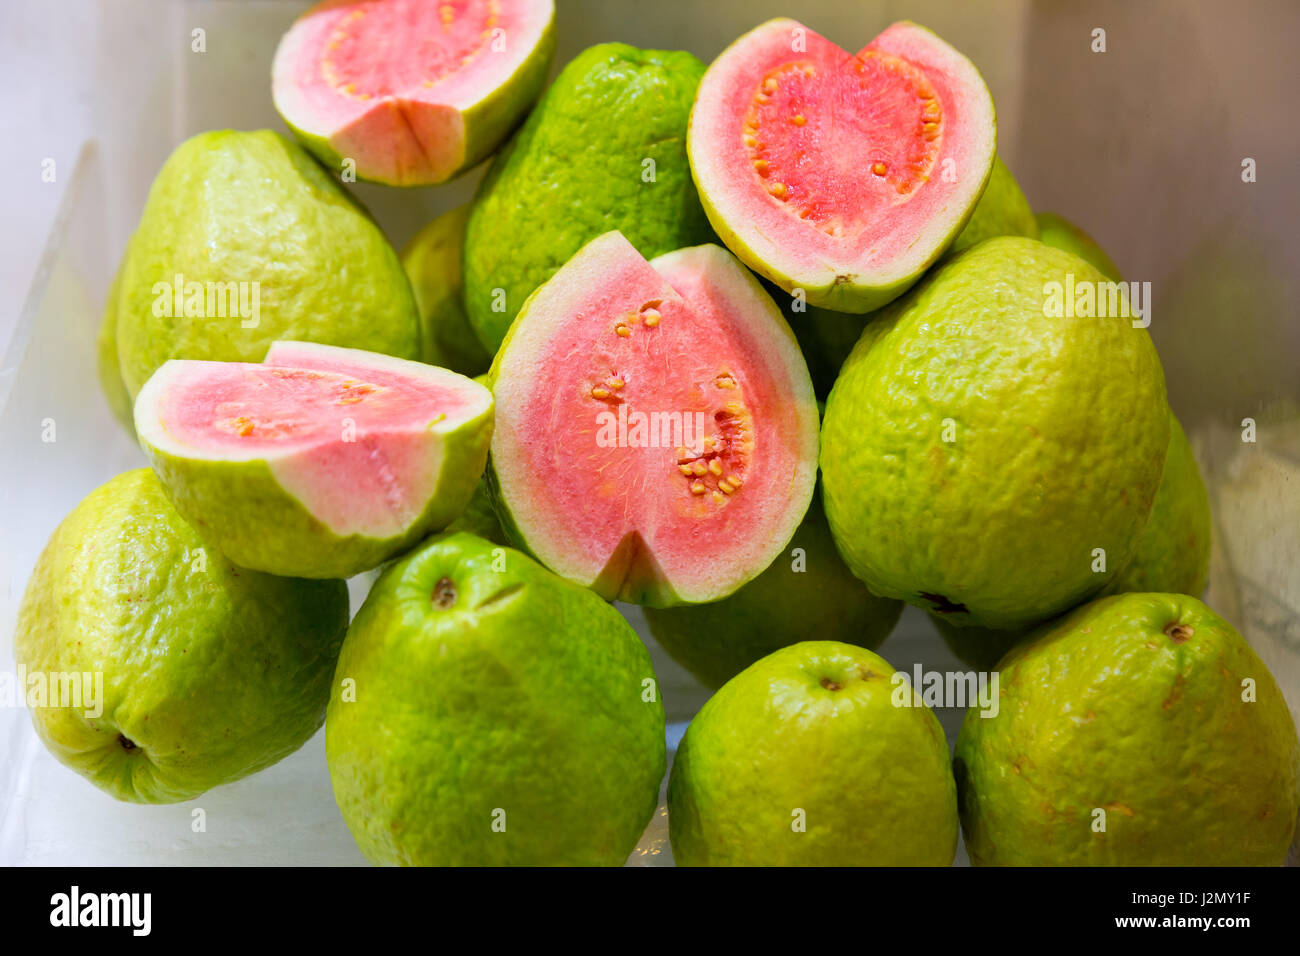 Guava Fruits On Display At A Fresh Market In Taiwan Stock Image